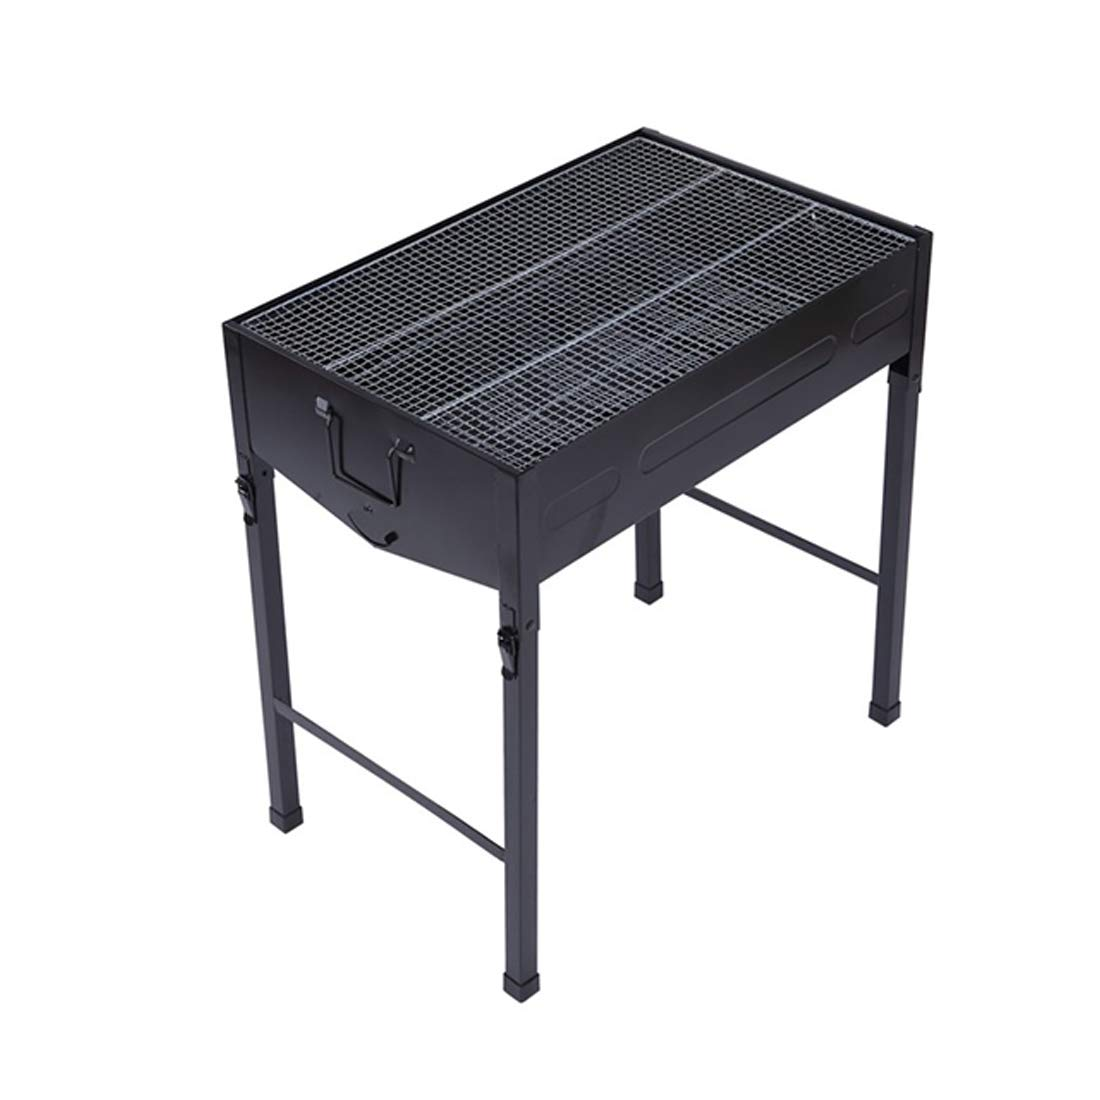 Vfdsvbdv Suitable for Outdoor Camping with Large Capacity and Easy to Carry with The Folding Grill Shelf. (Color : Black)